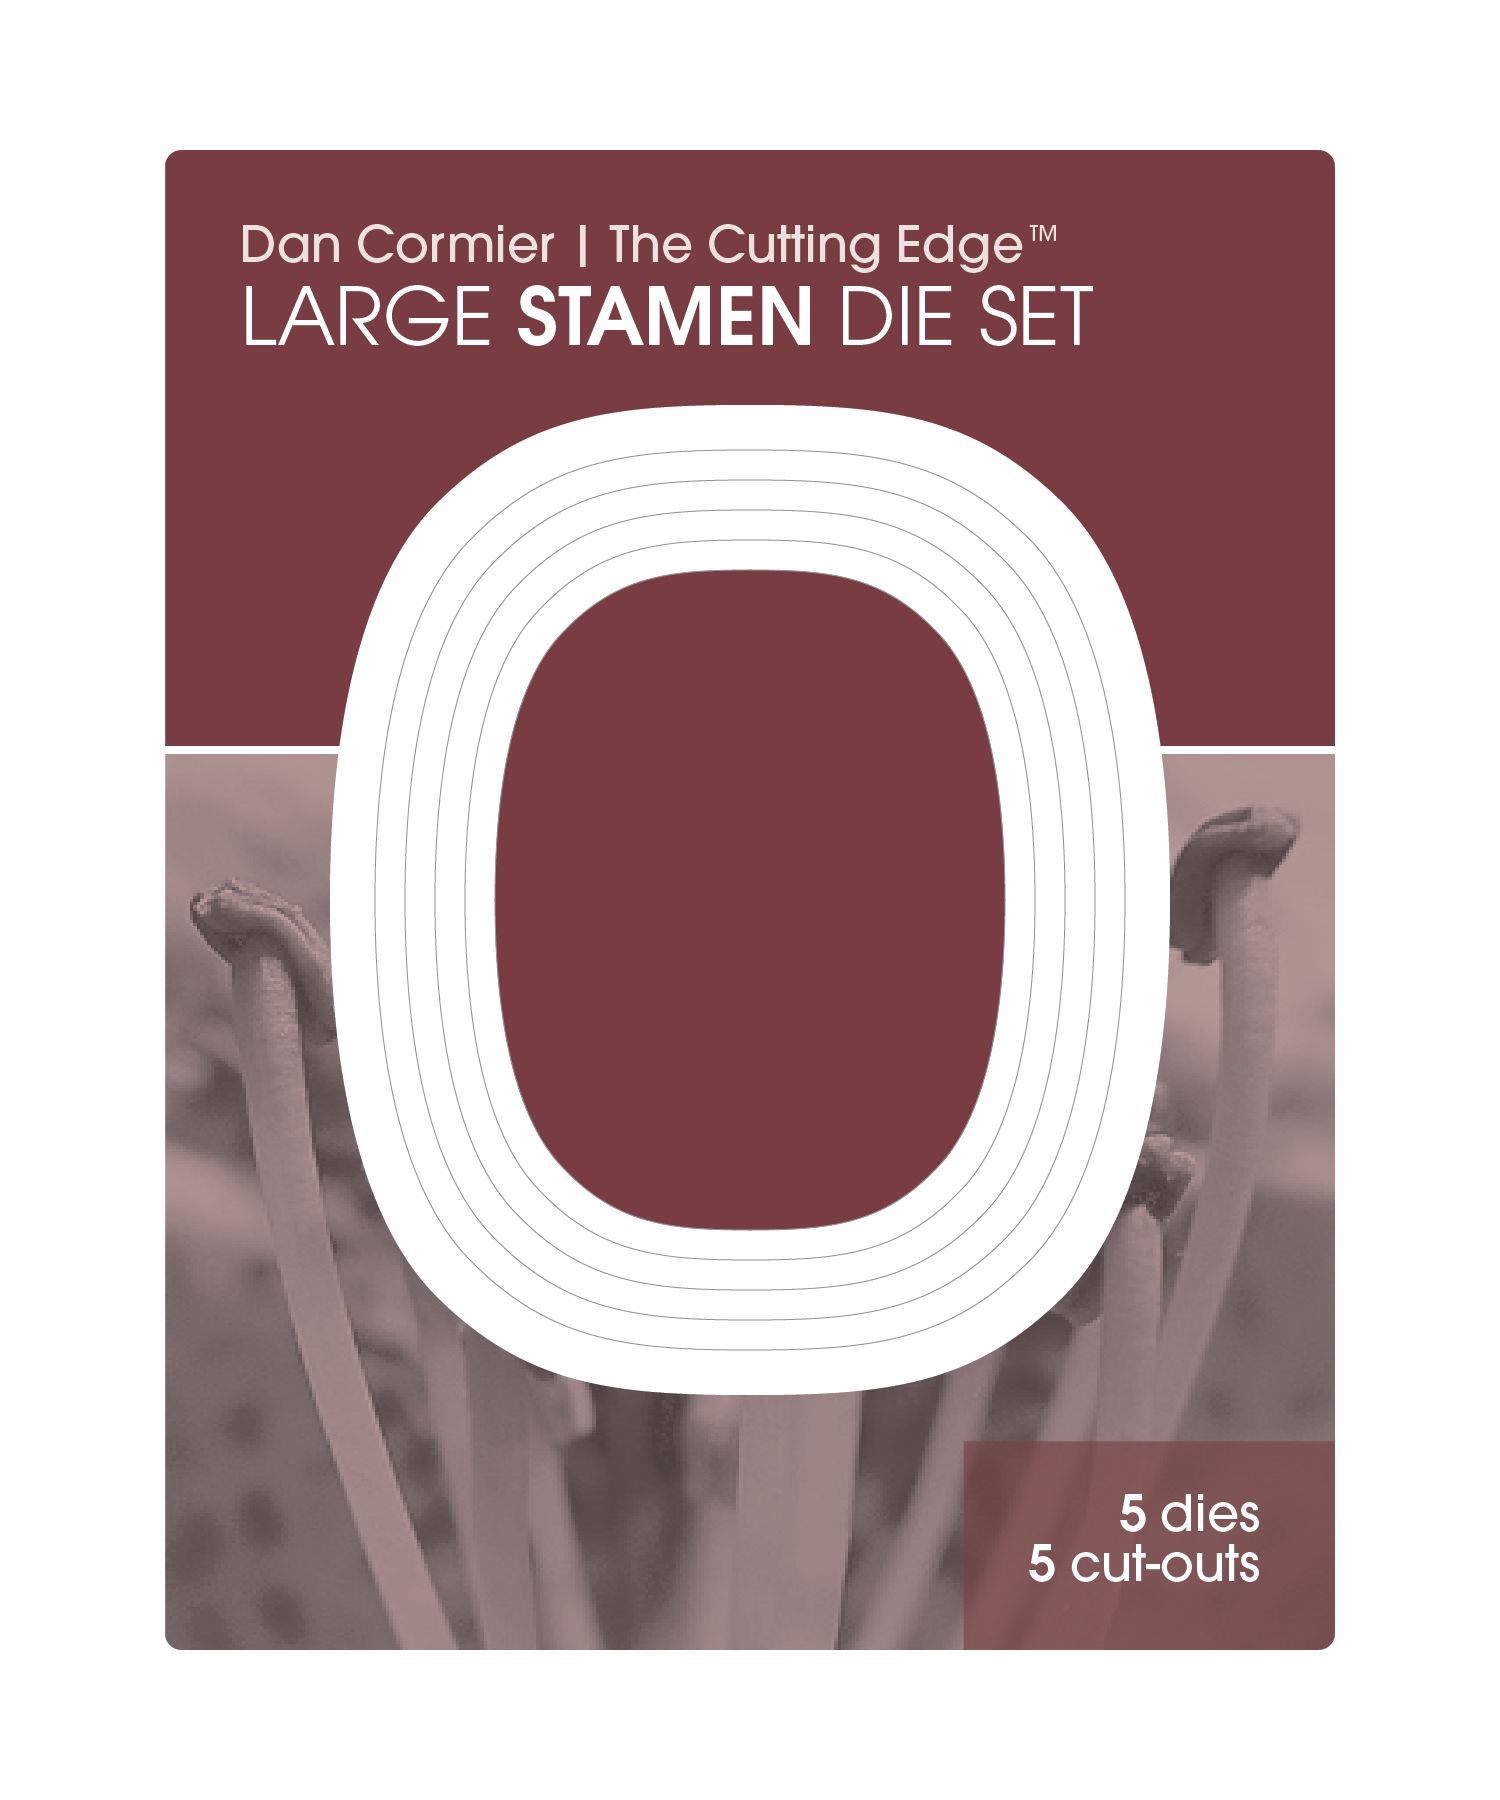 Large STAMEN Cover.png